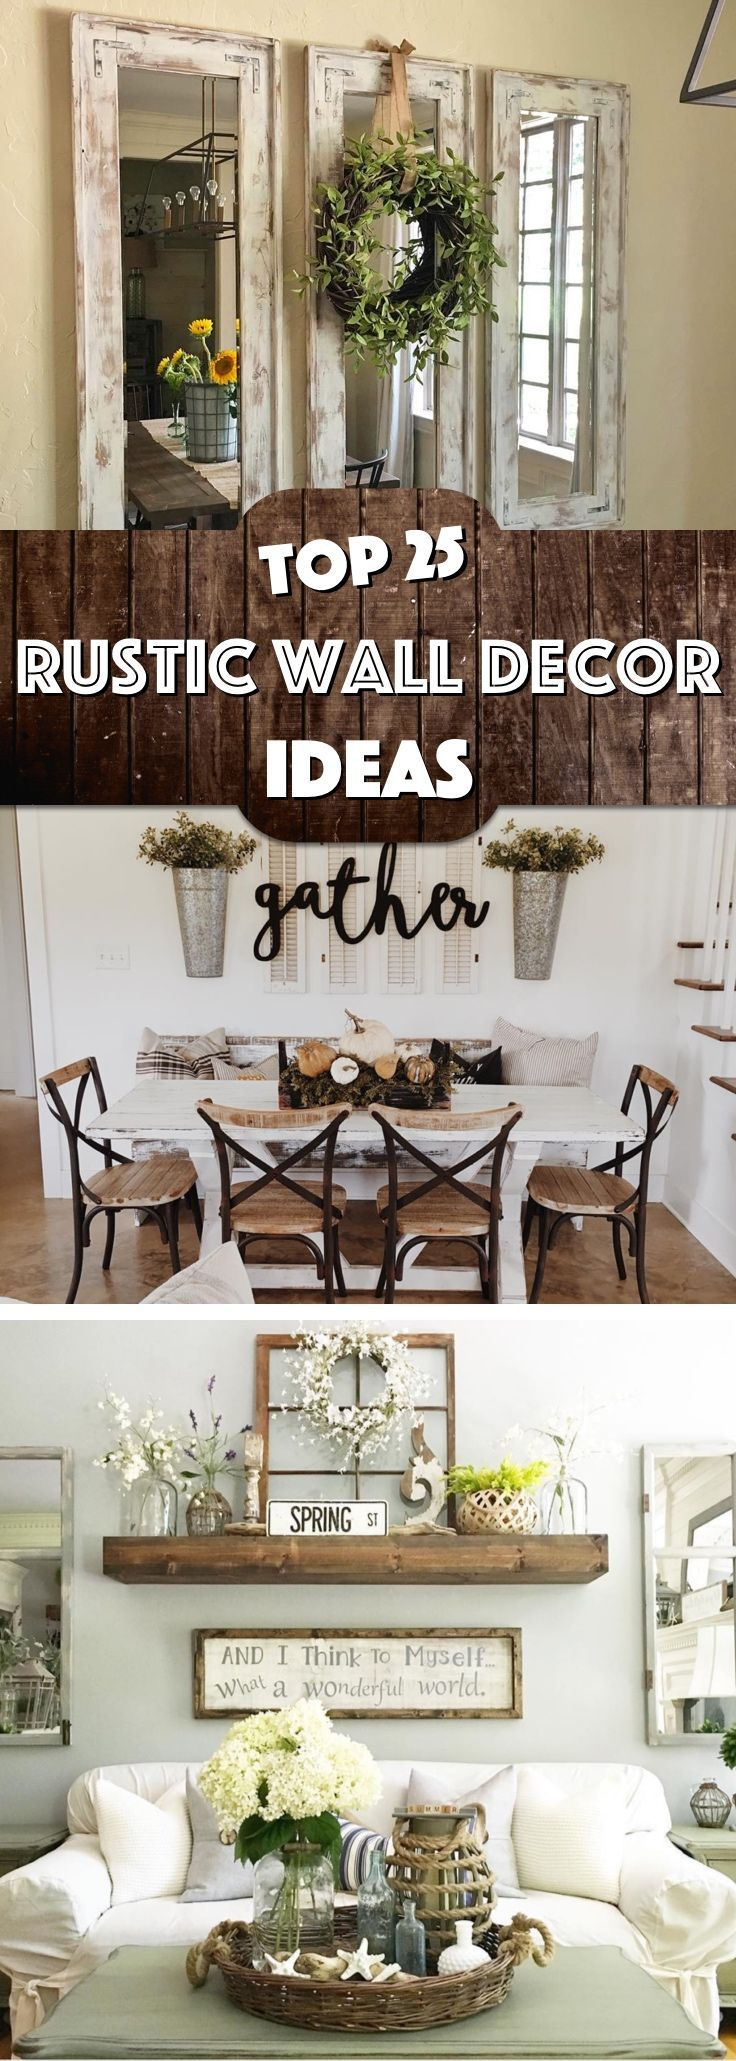 Western Wall Decor Ideas : Best ideas about rustic western decor on